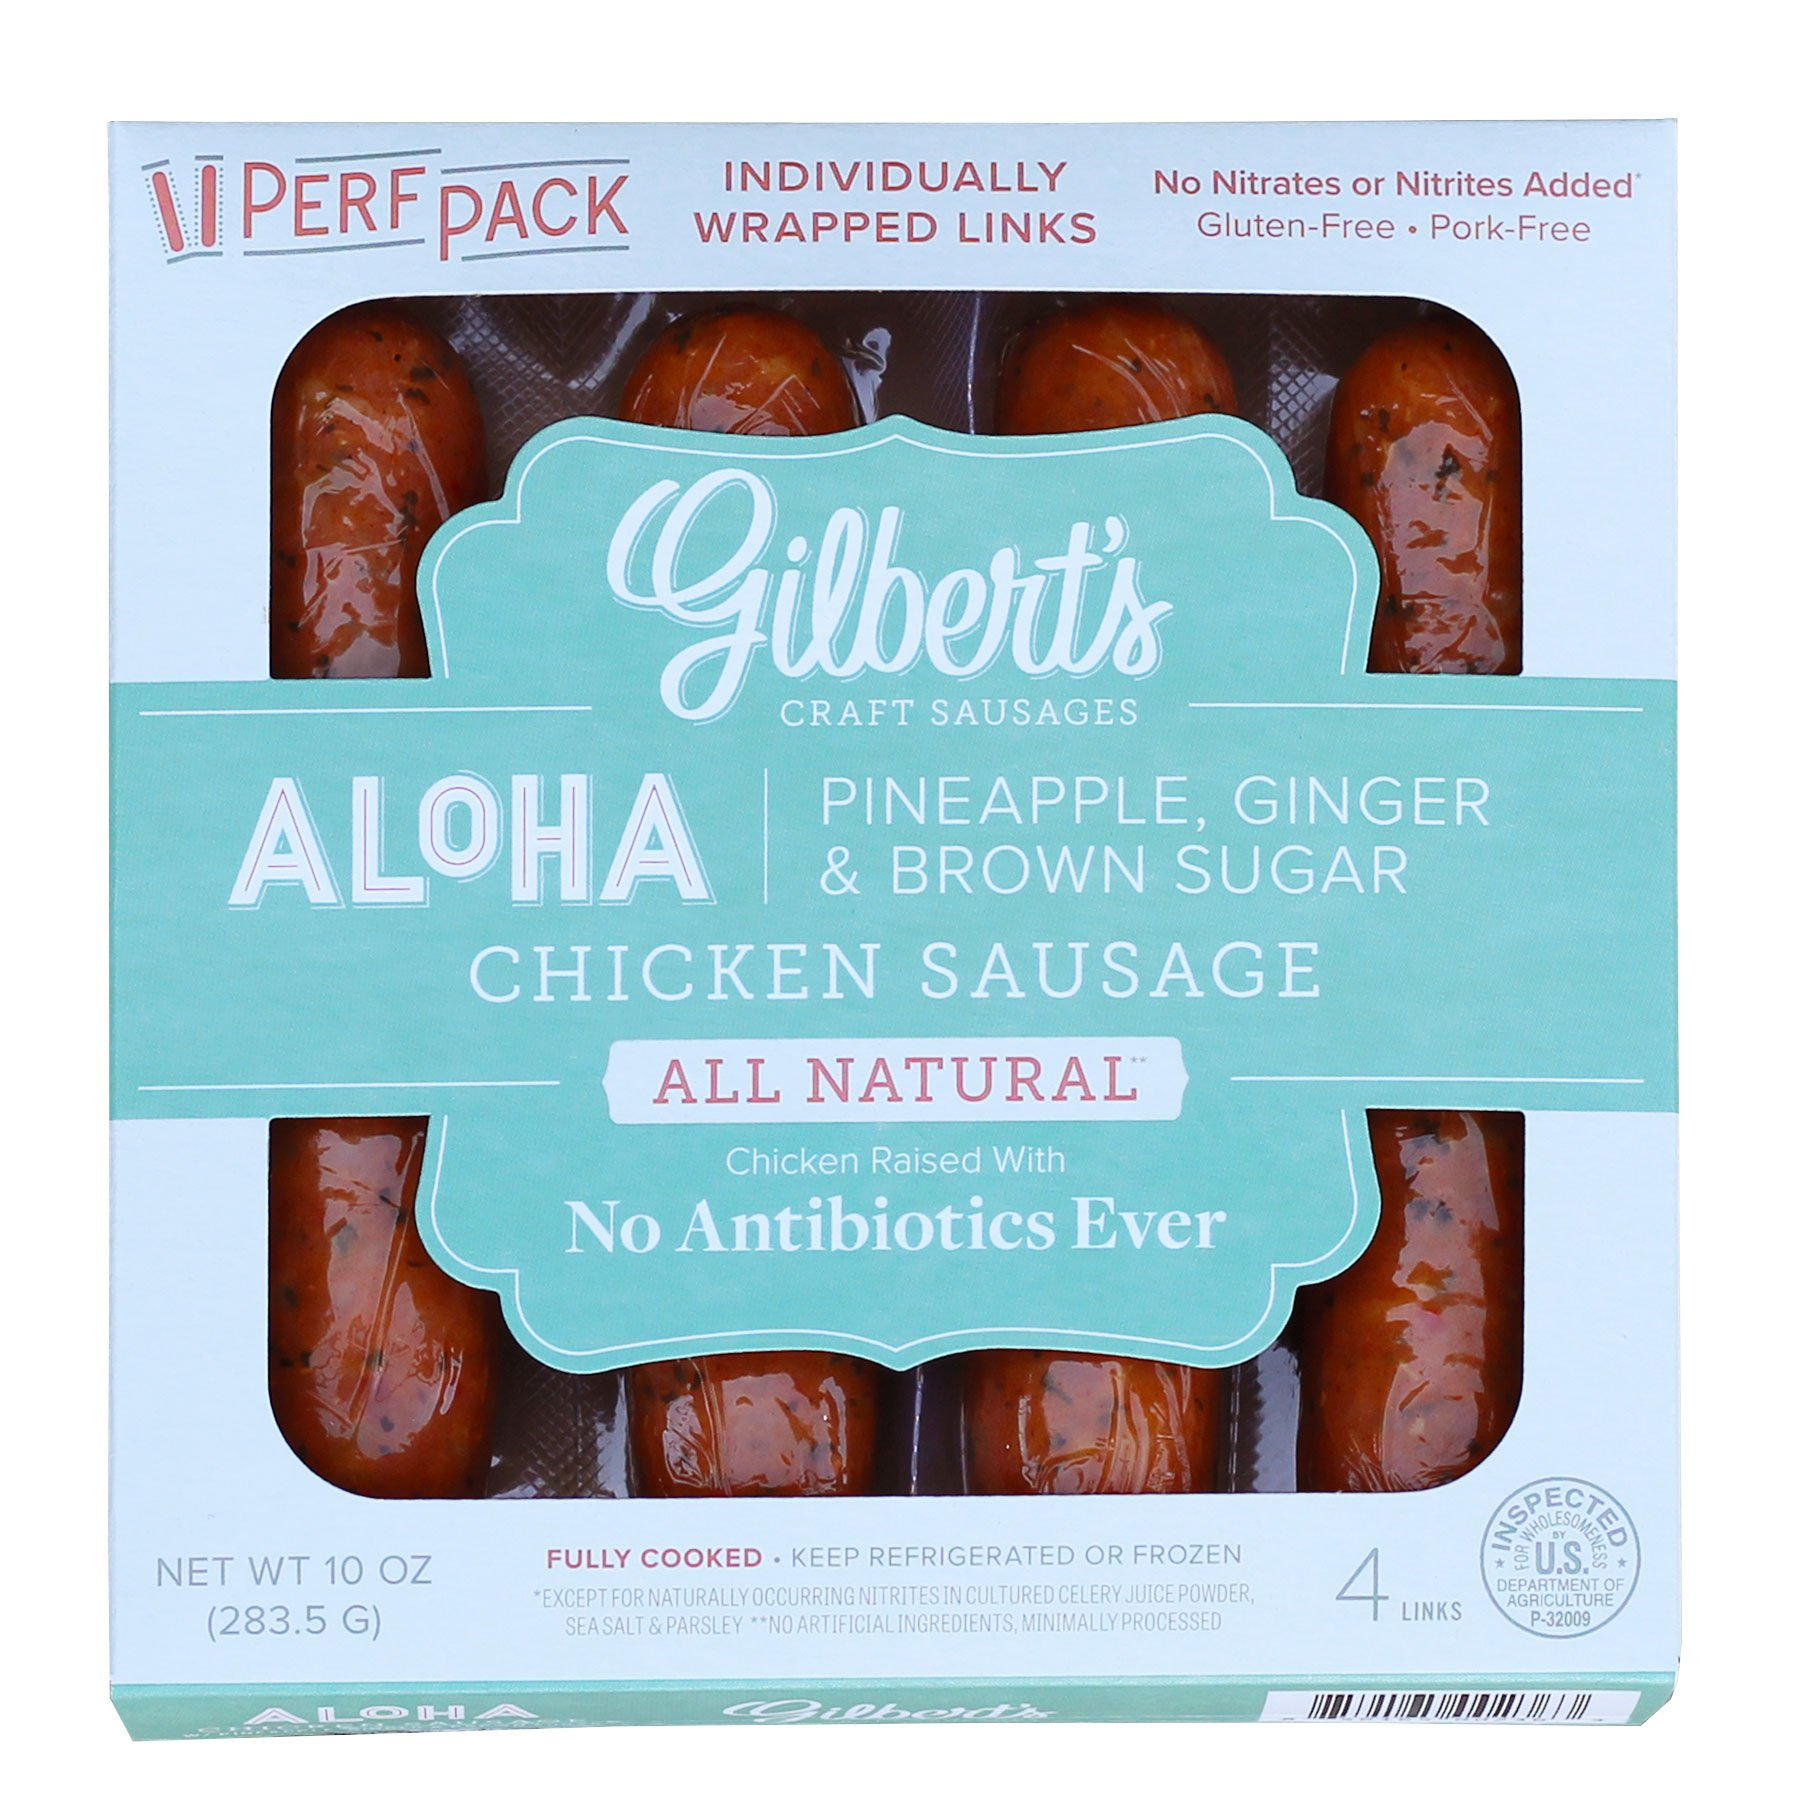 Gilbert's Craft Sausages Aloha Chicken Sausage with Pineapple, Ginger, and Brown Sugar, 10 Ounce by Gilbert's Craft Sausages